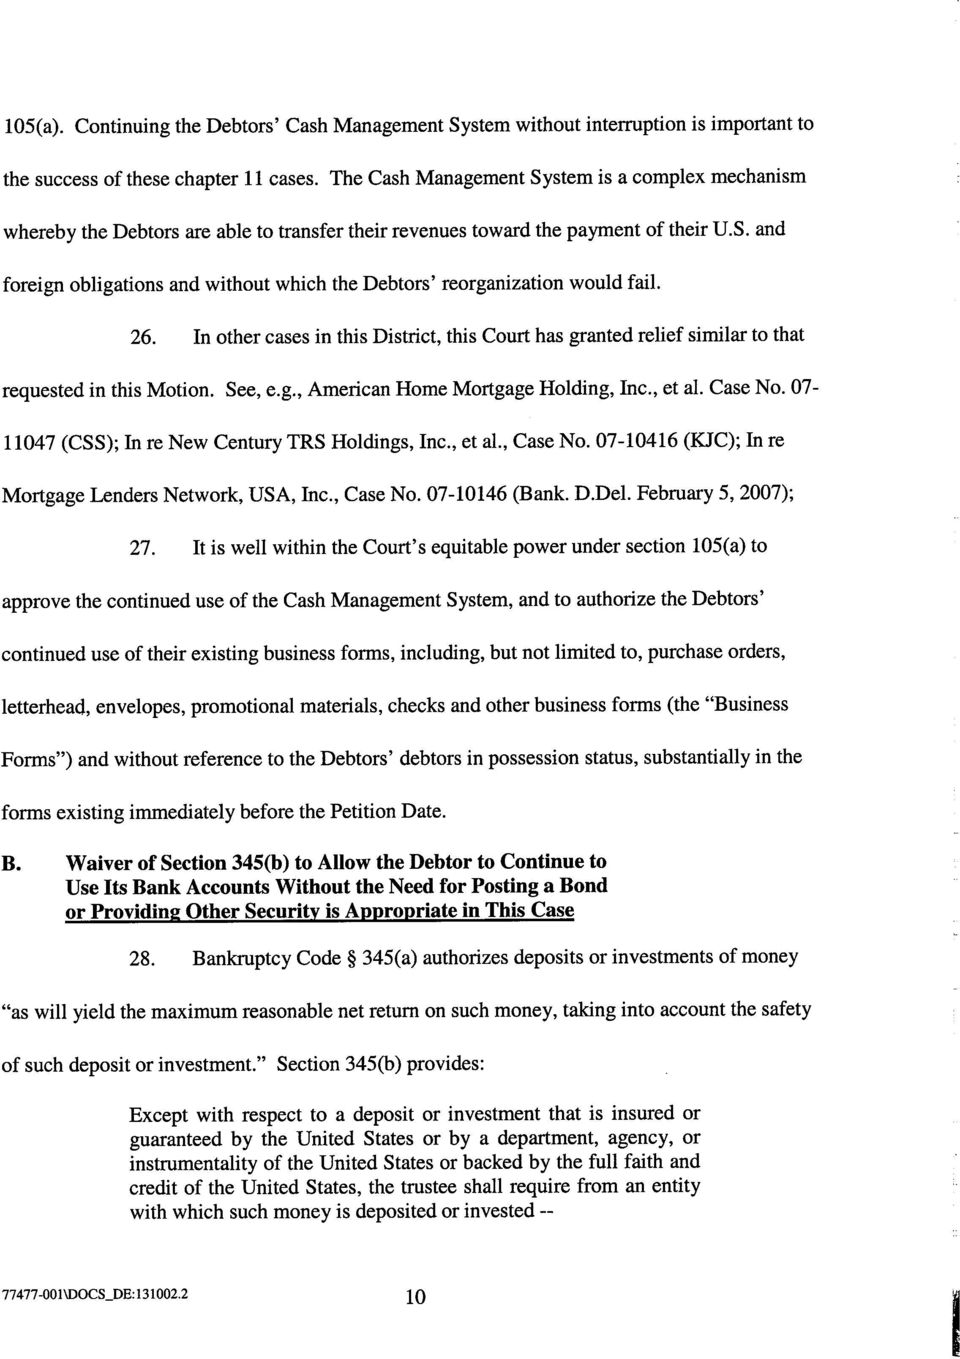 and foreign obligations and without which the Debtors' reorganization would fail 26. In other cases in this District, this Court has granted relief similar to that requested in this Motion. See, e.g., American Home Mortgage Holding, Inc.